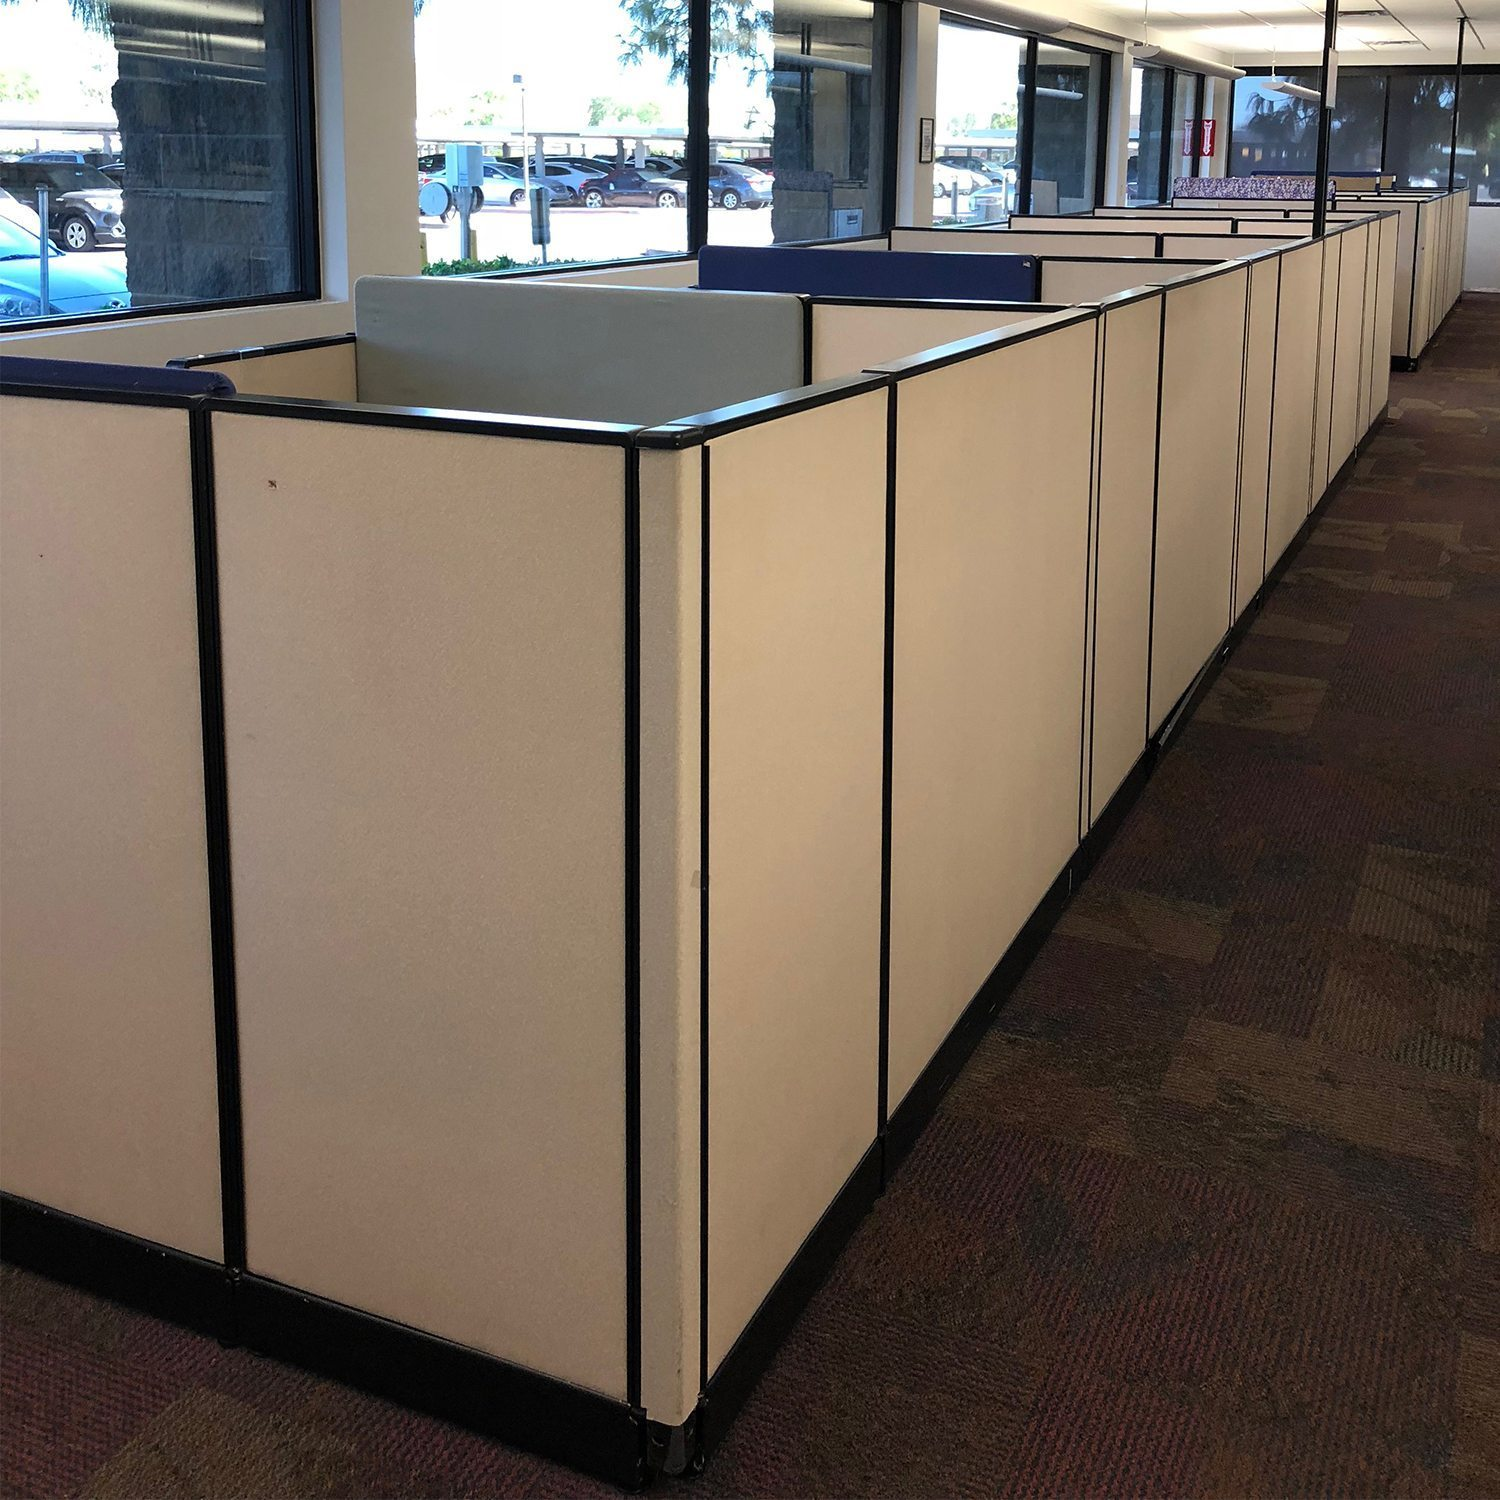 efile cabinet 6 215 6 used cubicles by haworth creme sold in pods 15138